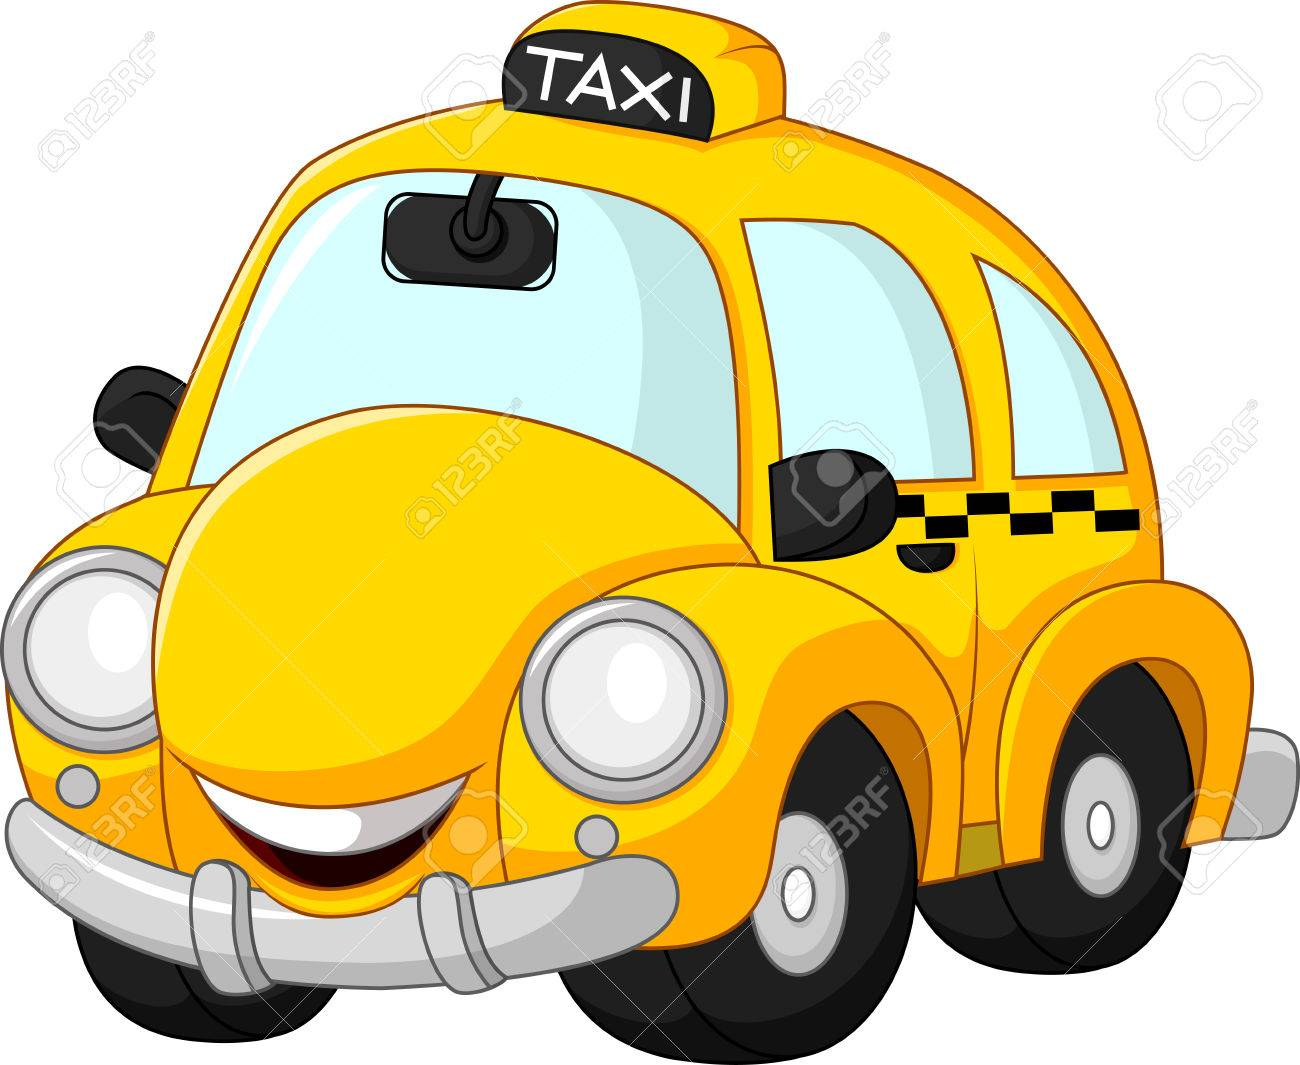 Funny taxi cartoon isolated on white background - 60069531